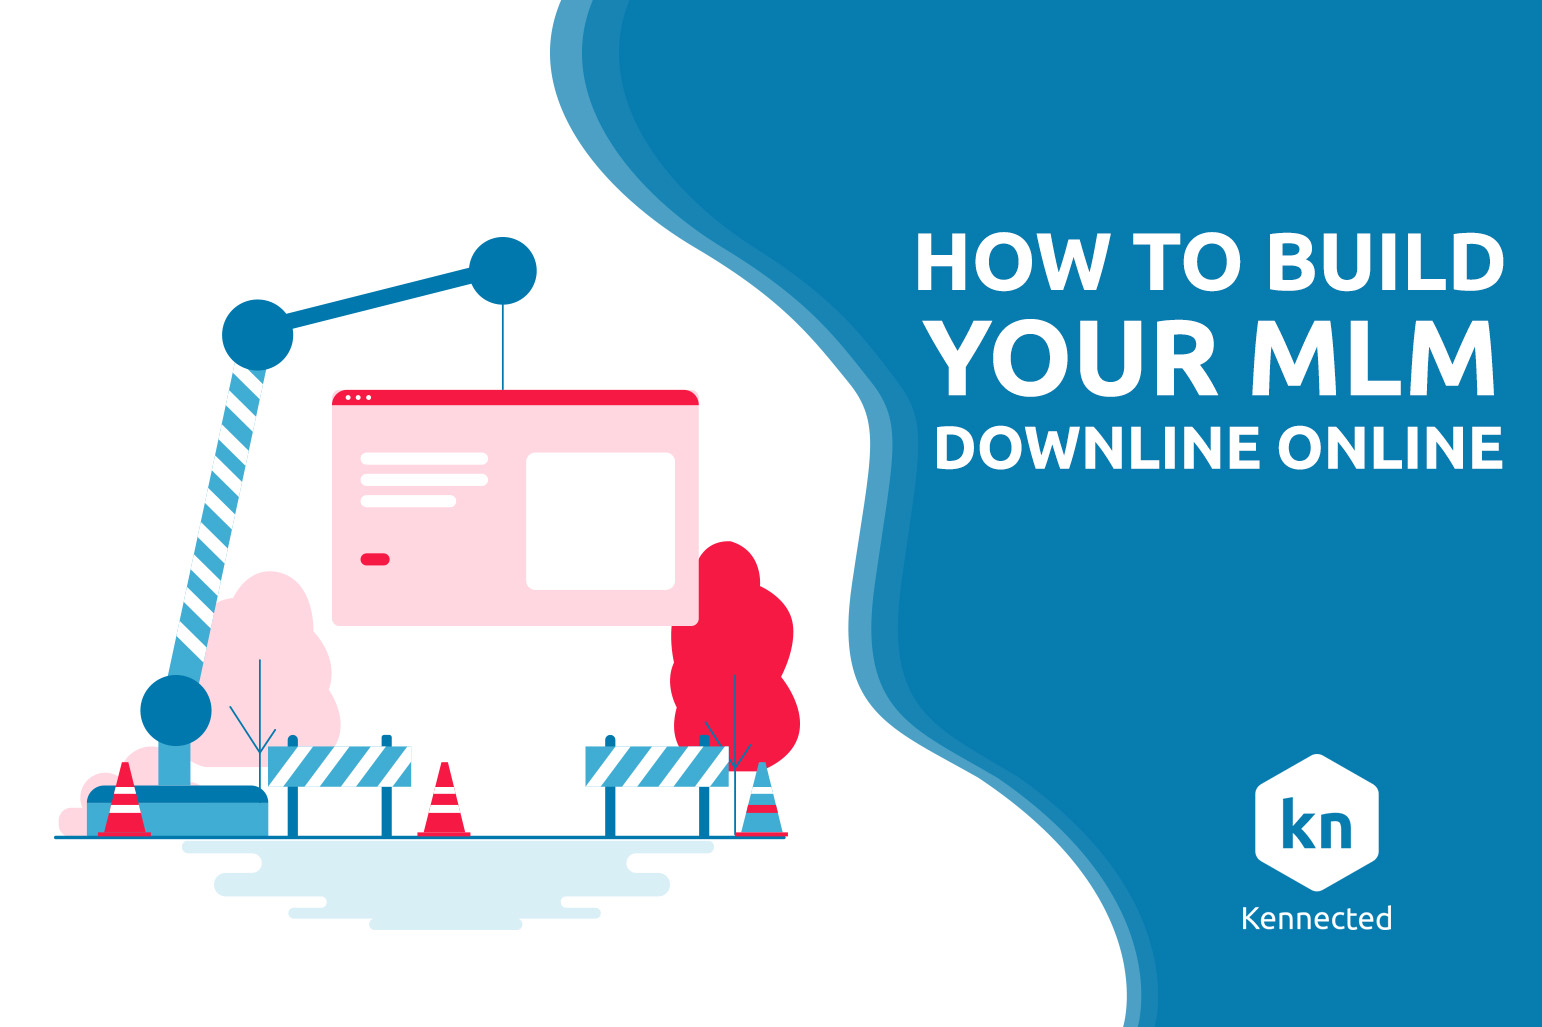 How To Build Your MLM Downline Online